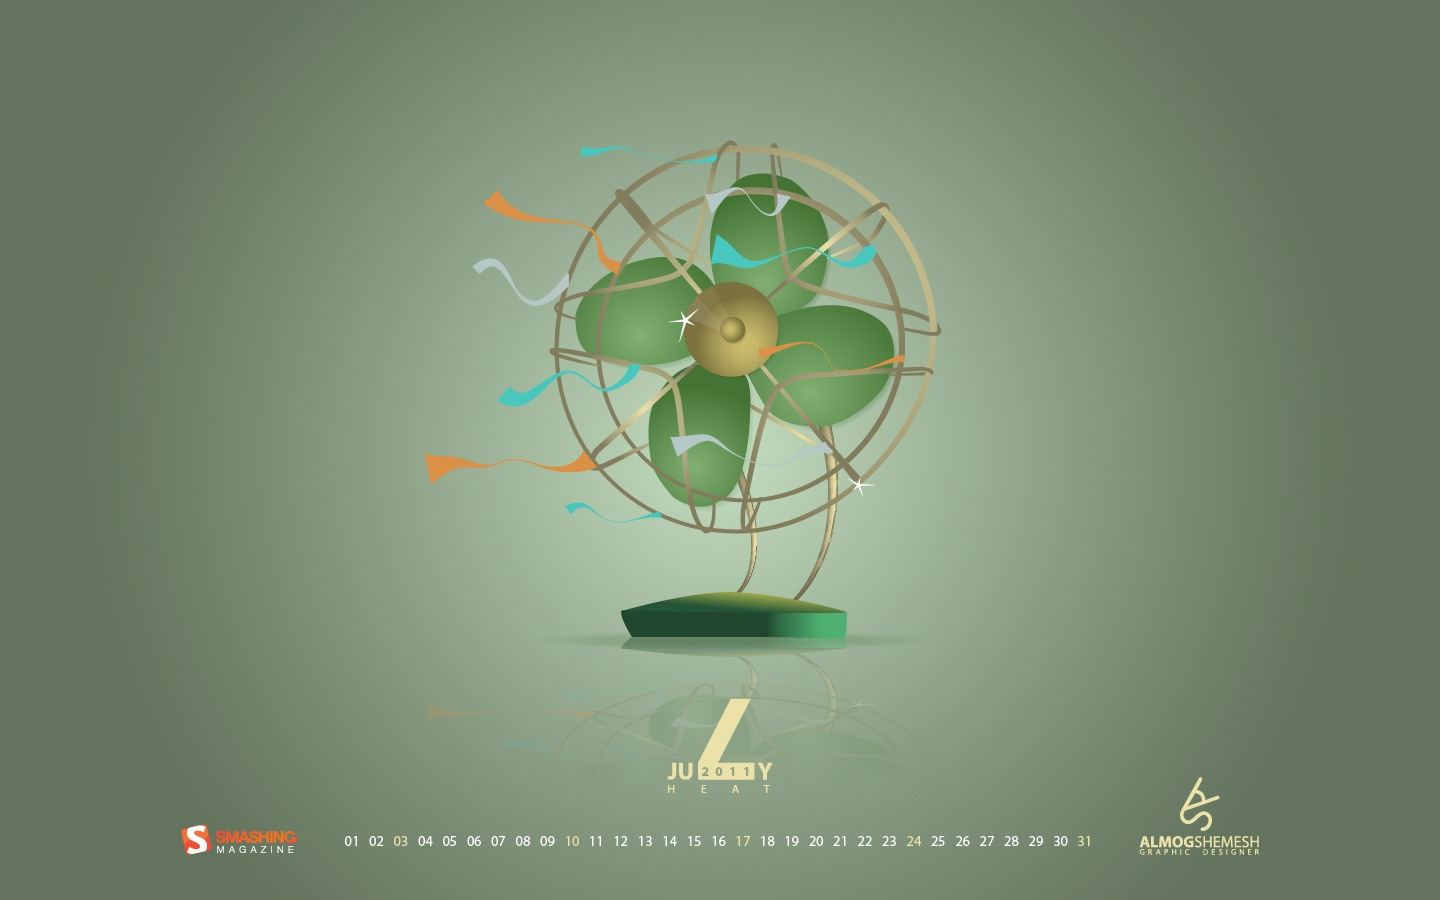 In January Calendar Wallpaper 29736